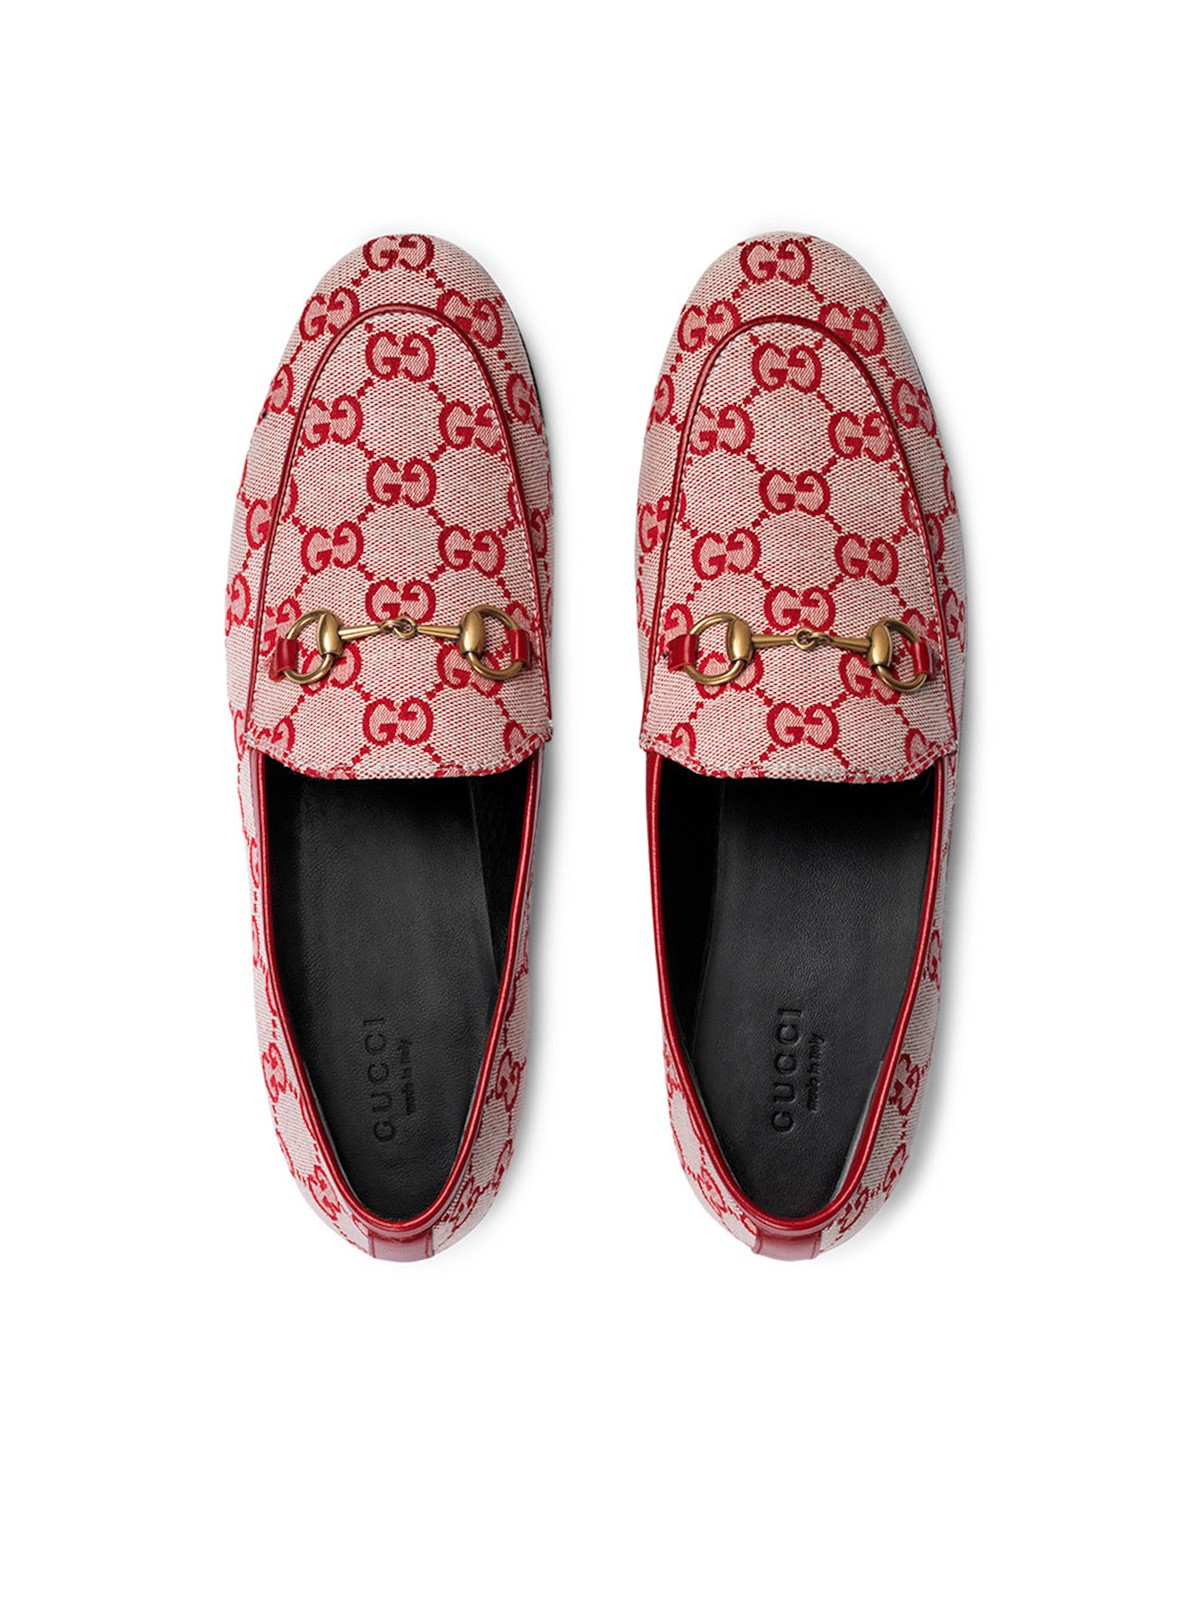 4df769a065ac gucci GG CANVAS JORDAAN LOAFERS available on montiboutique.com - 22759